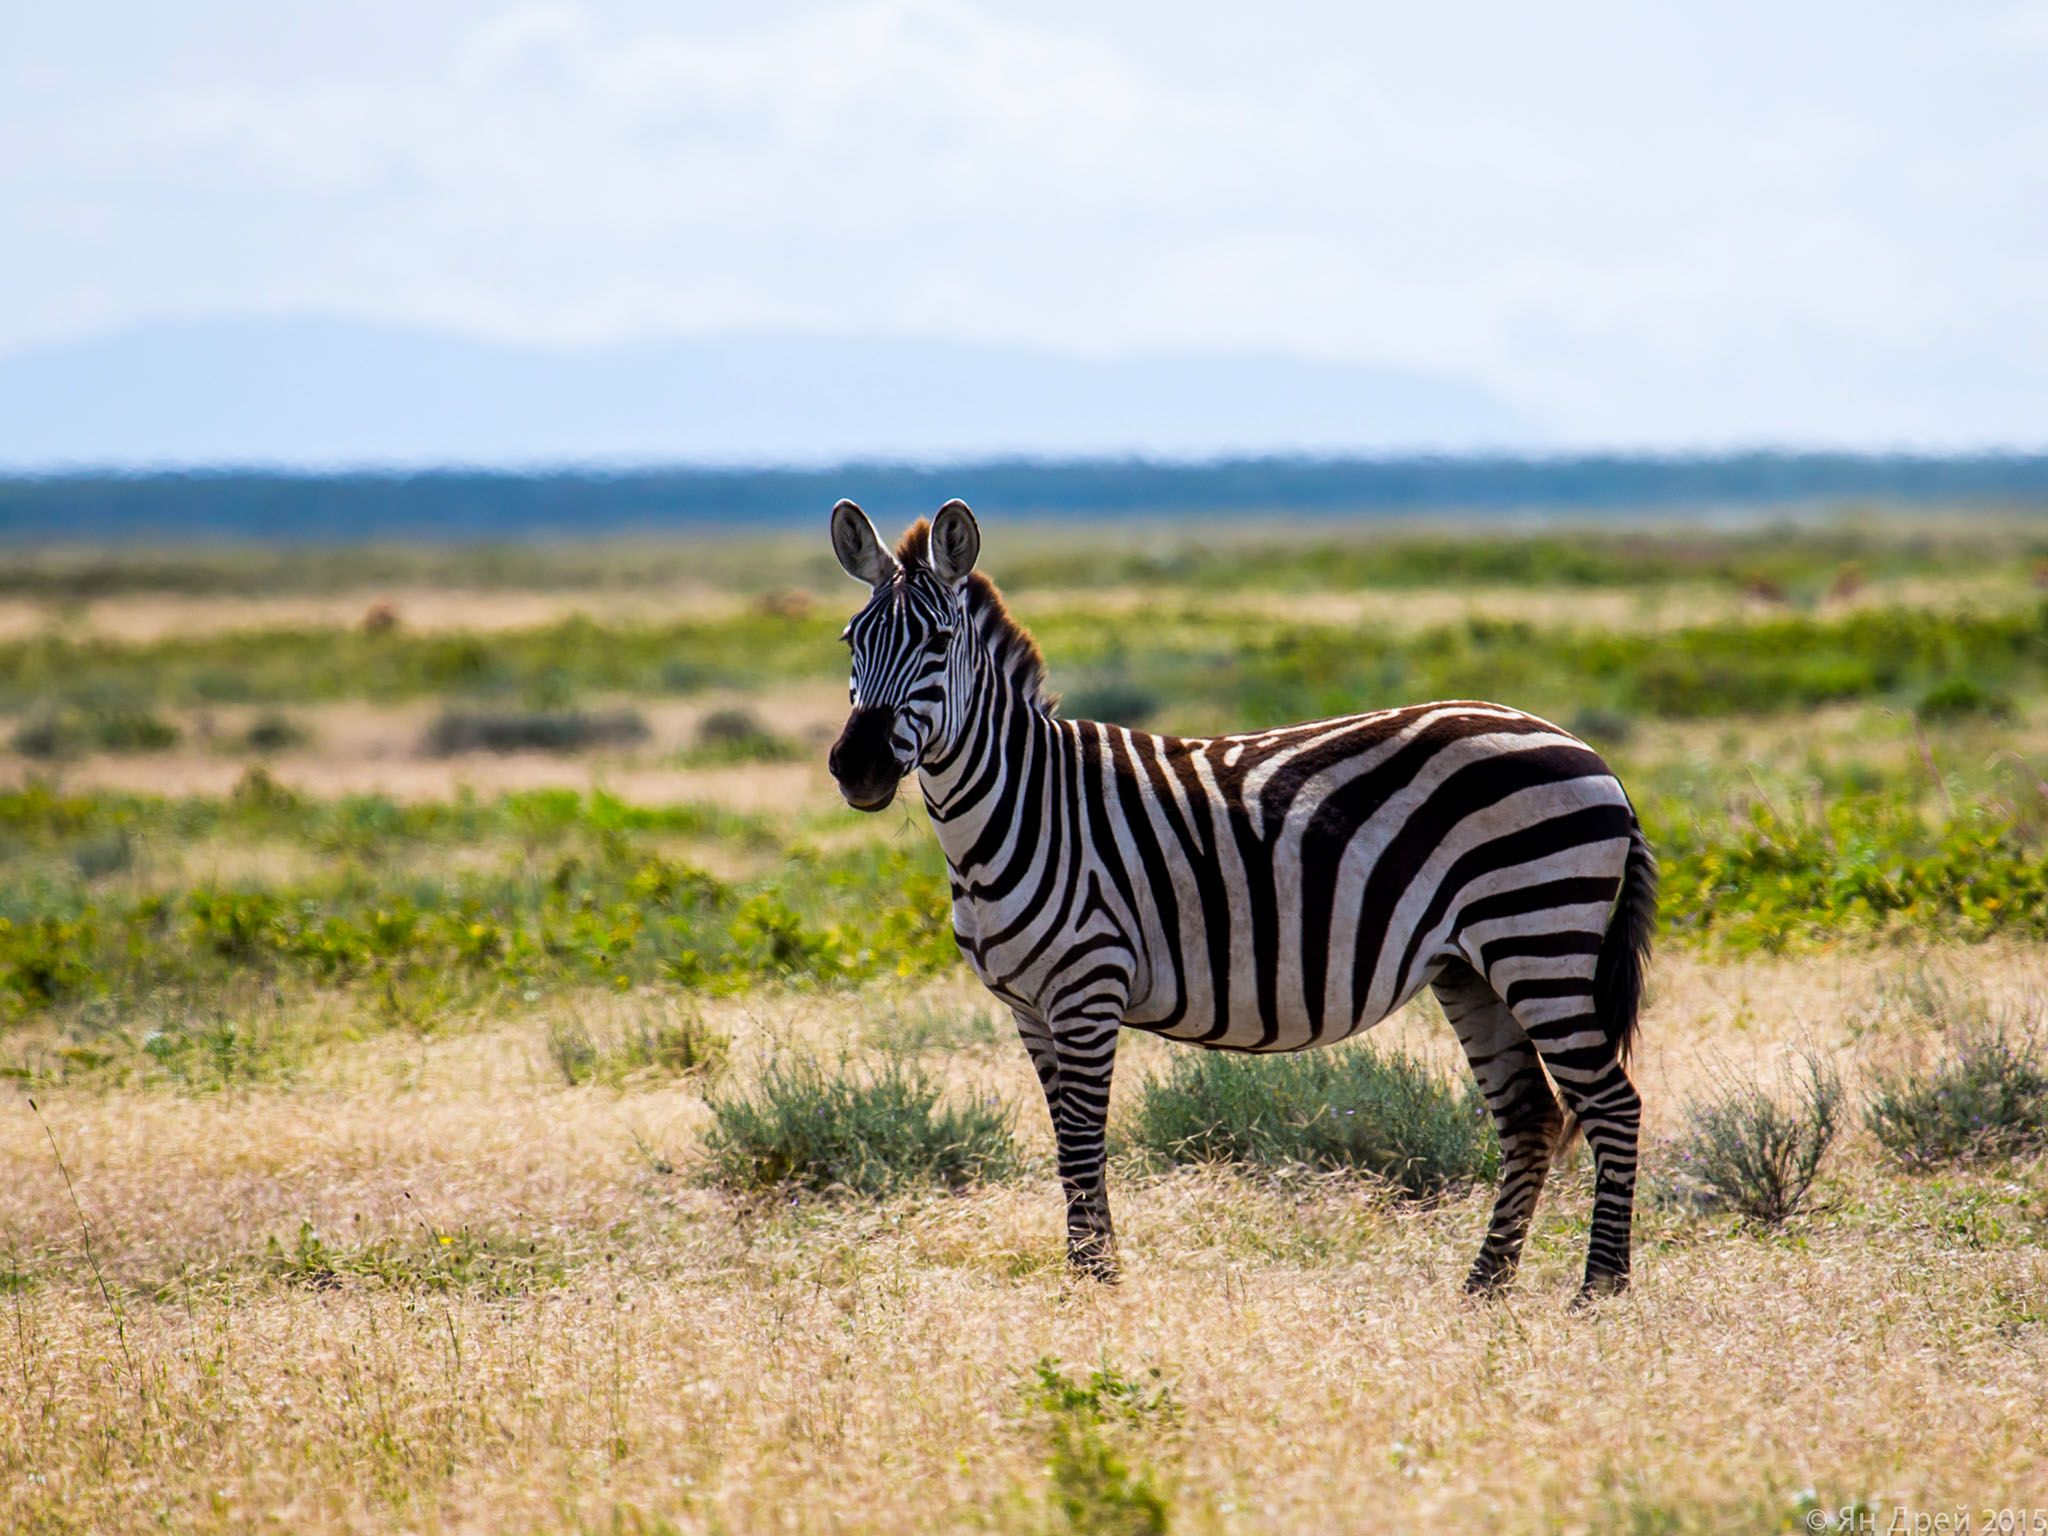 Tanzania, Africa: Solo Zebra on the Serengeti plains. This image is from MyGrations. [Photo of the day - May 2016]